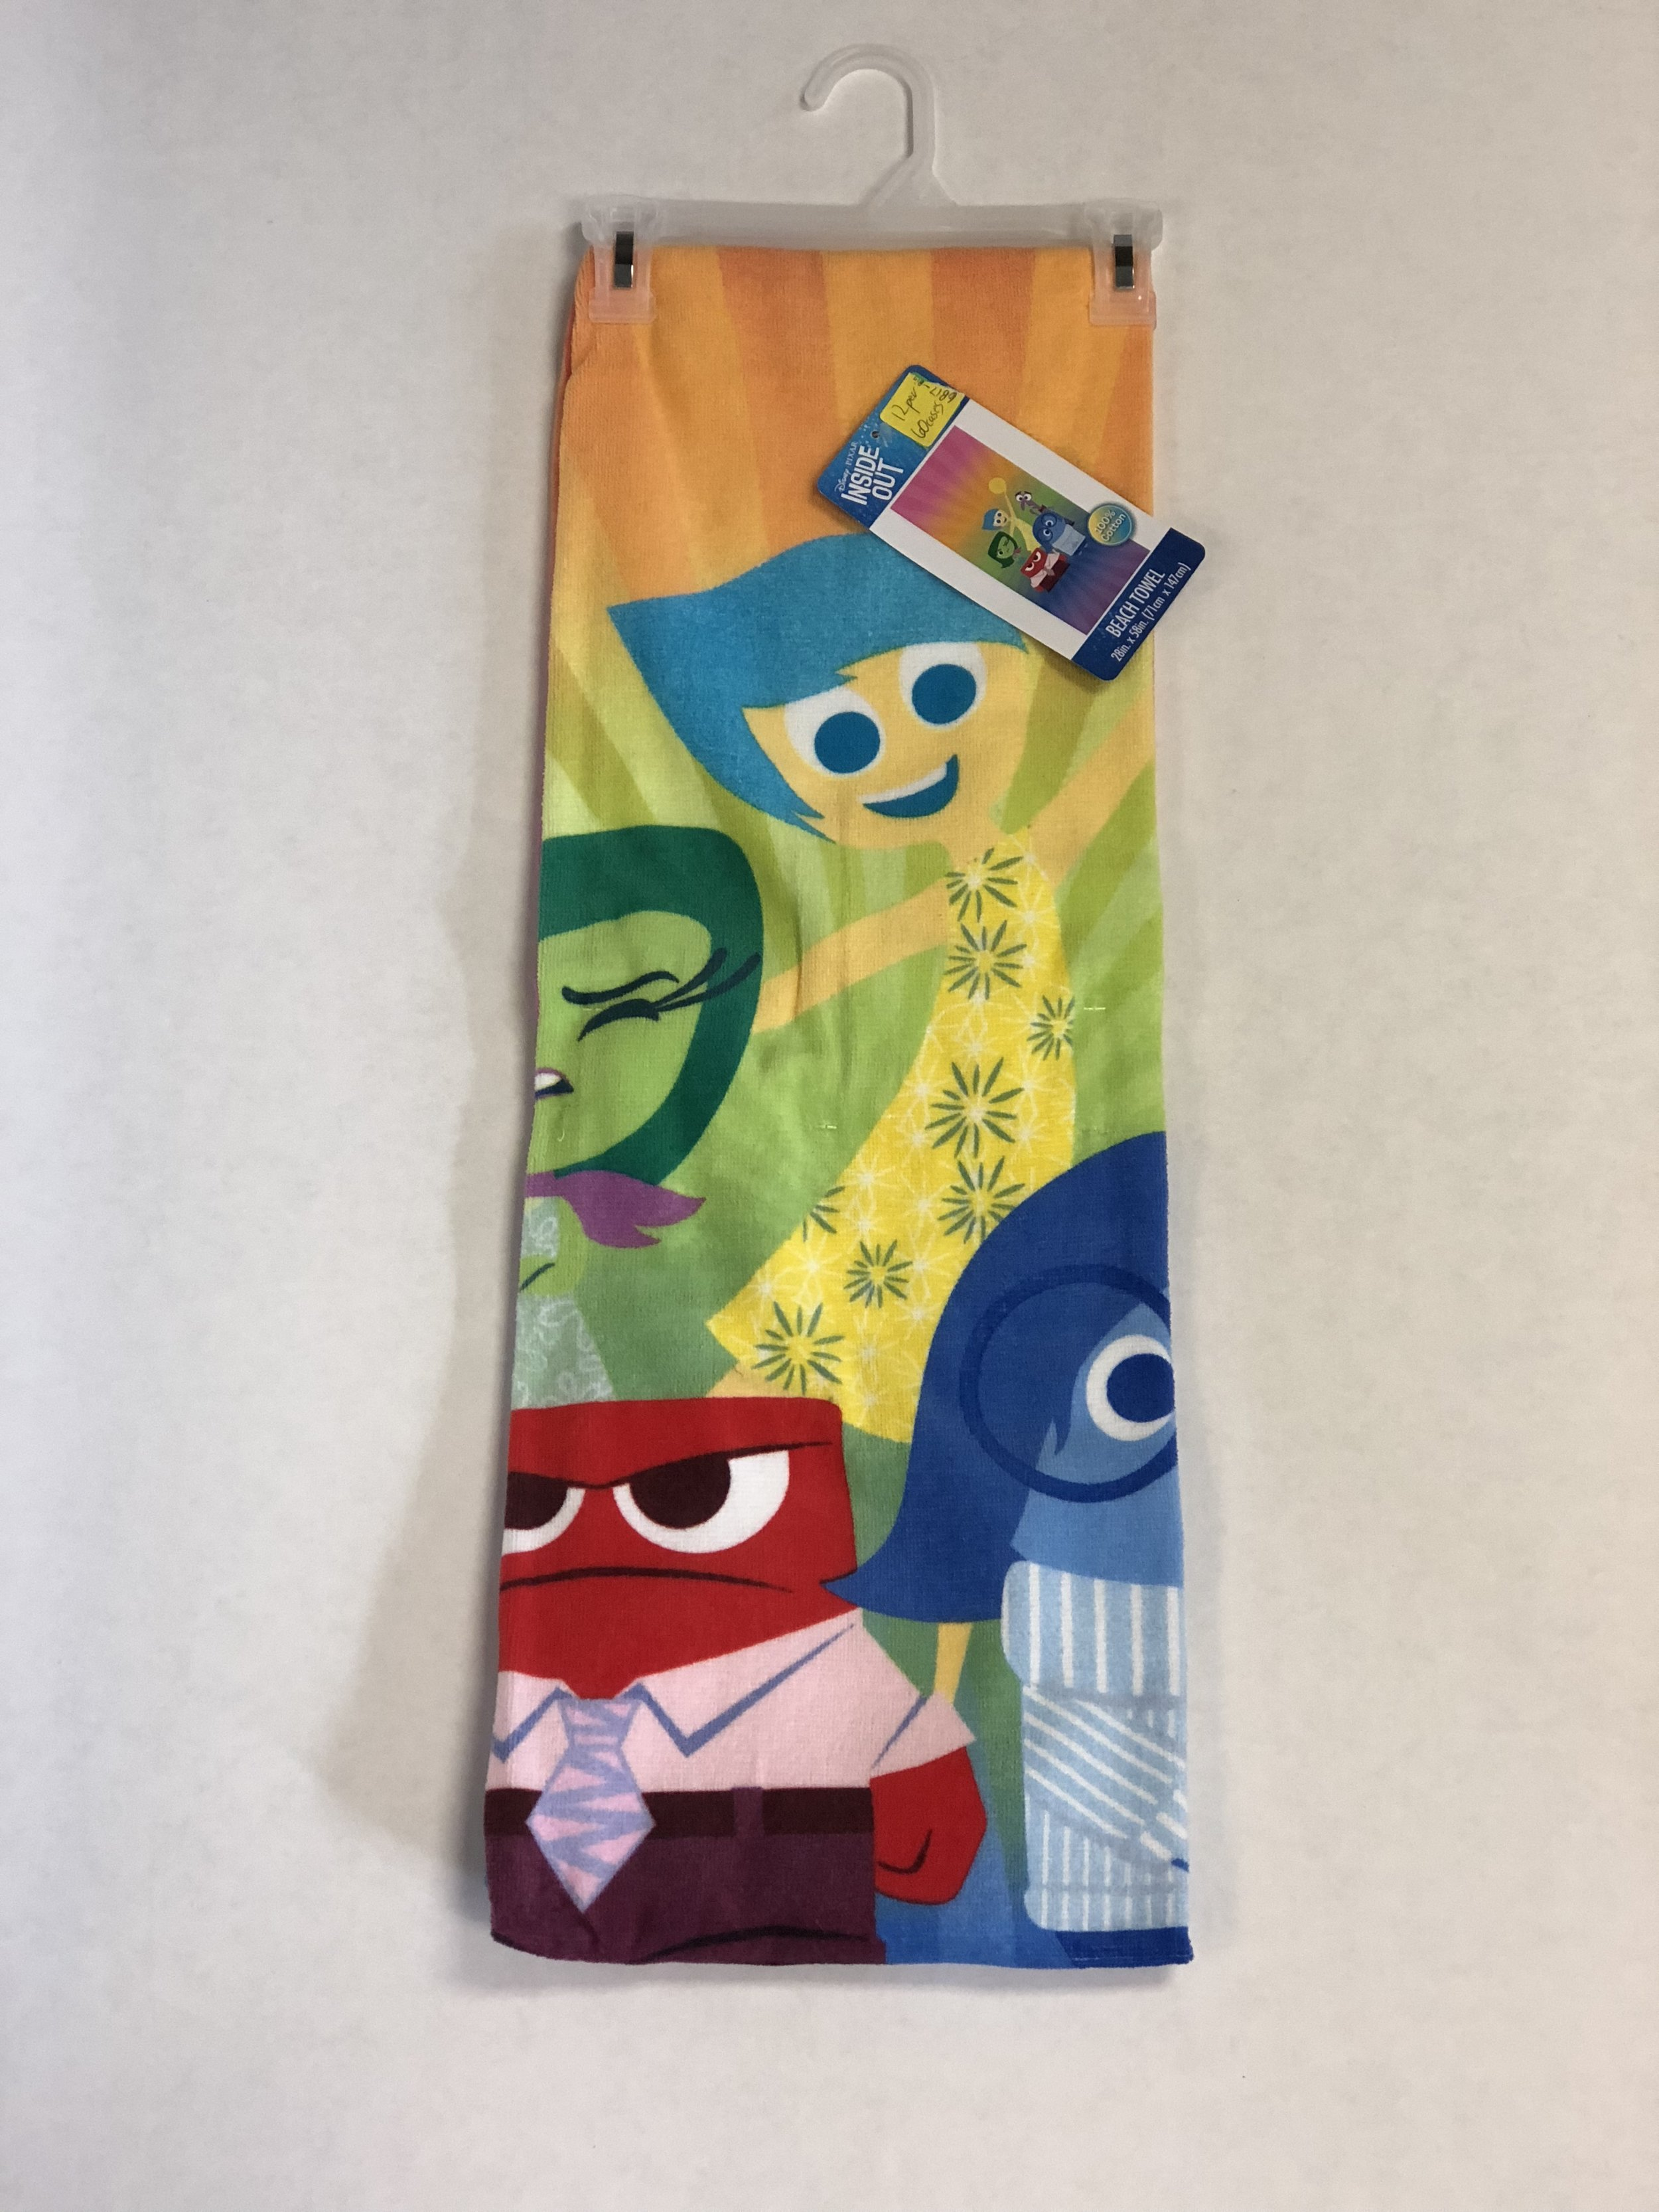 DISNEY INSIDE OUT TOWEL: 12 PER, 60 CASES, (28in x 58in)